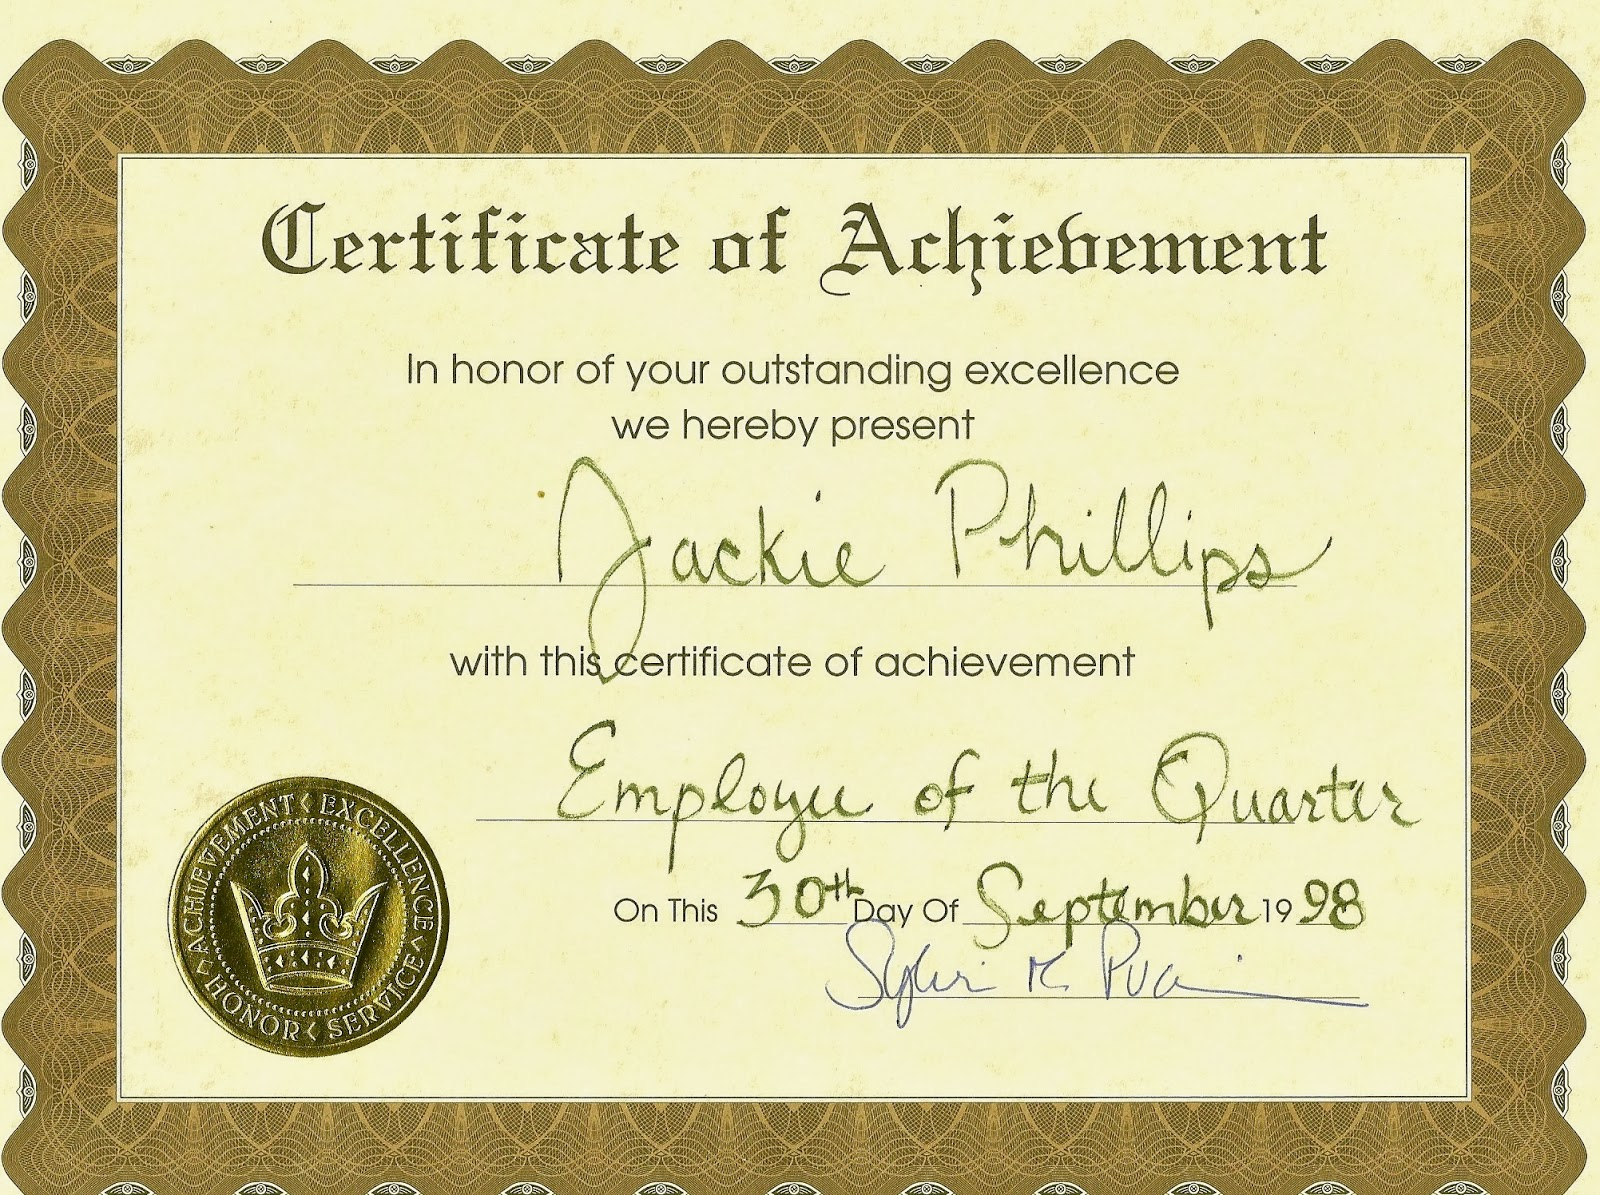 Employee of the month certificate template with picture gallery employee of the month certificate templates image collections employee month certificate template pet detective case blog yelopaper Image collections